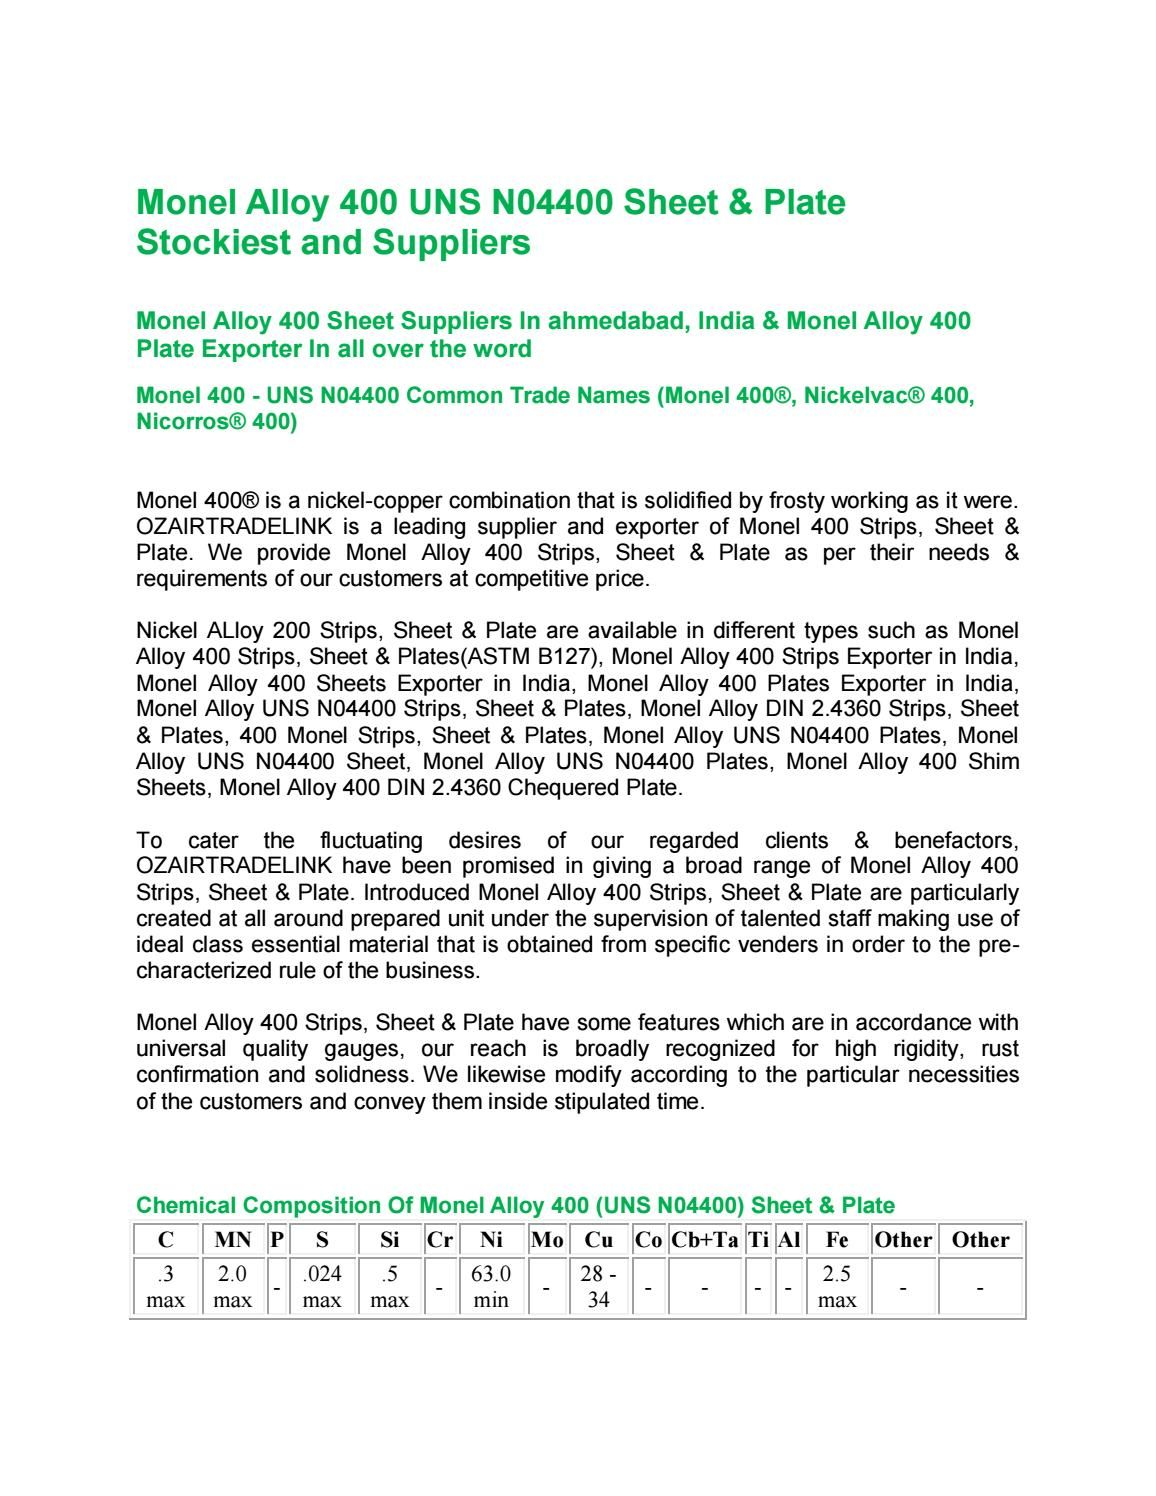 Monel Alloy 400 UNS N04400 Sheet & Plate Stockiest and Suppliers